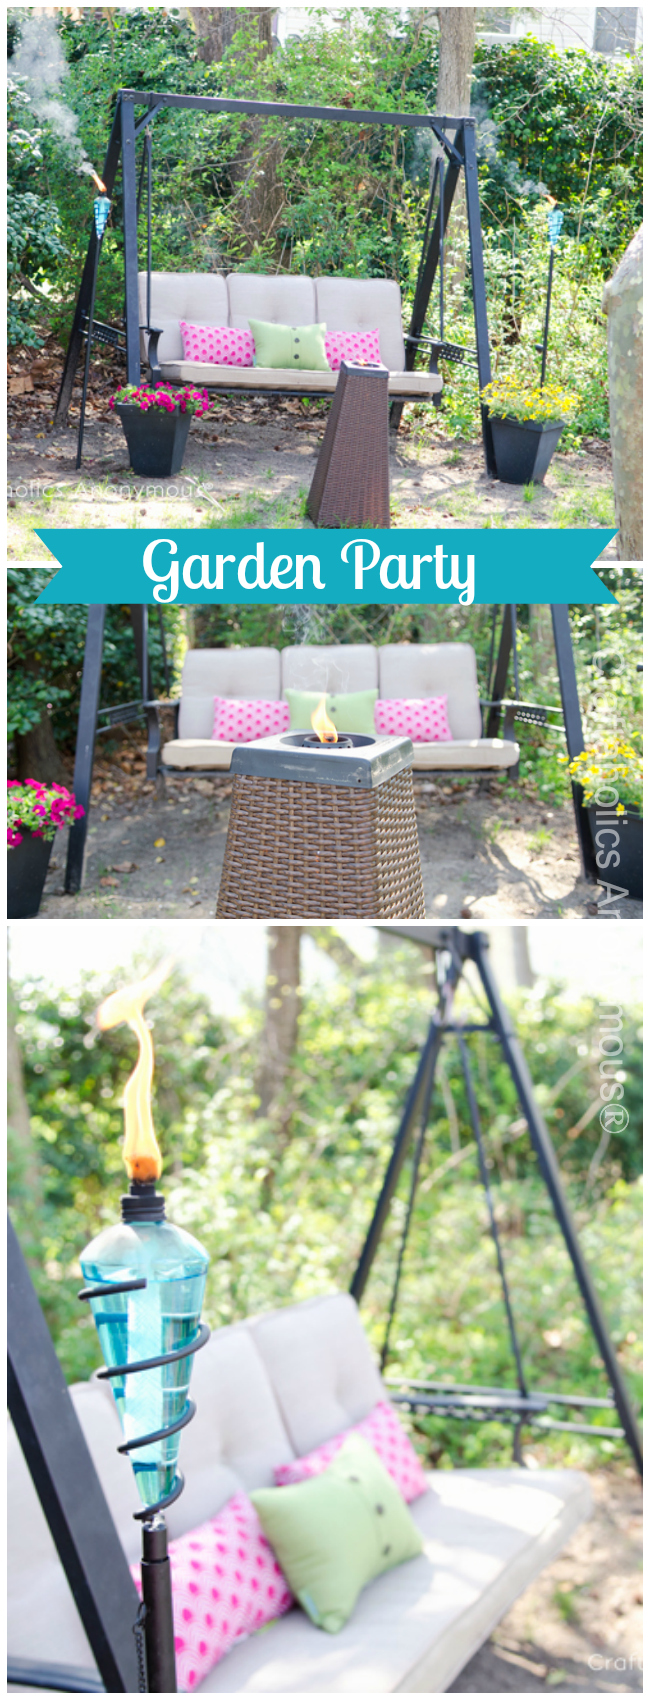 Backyard Garden Party :  pretty backdrops and the perfect setting for an outdoor garden party